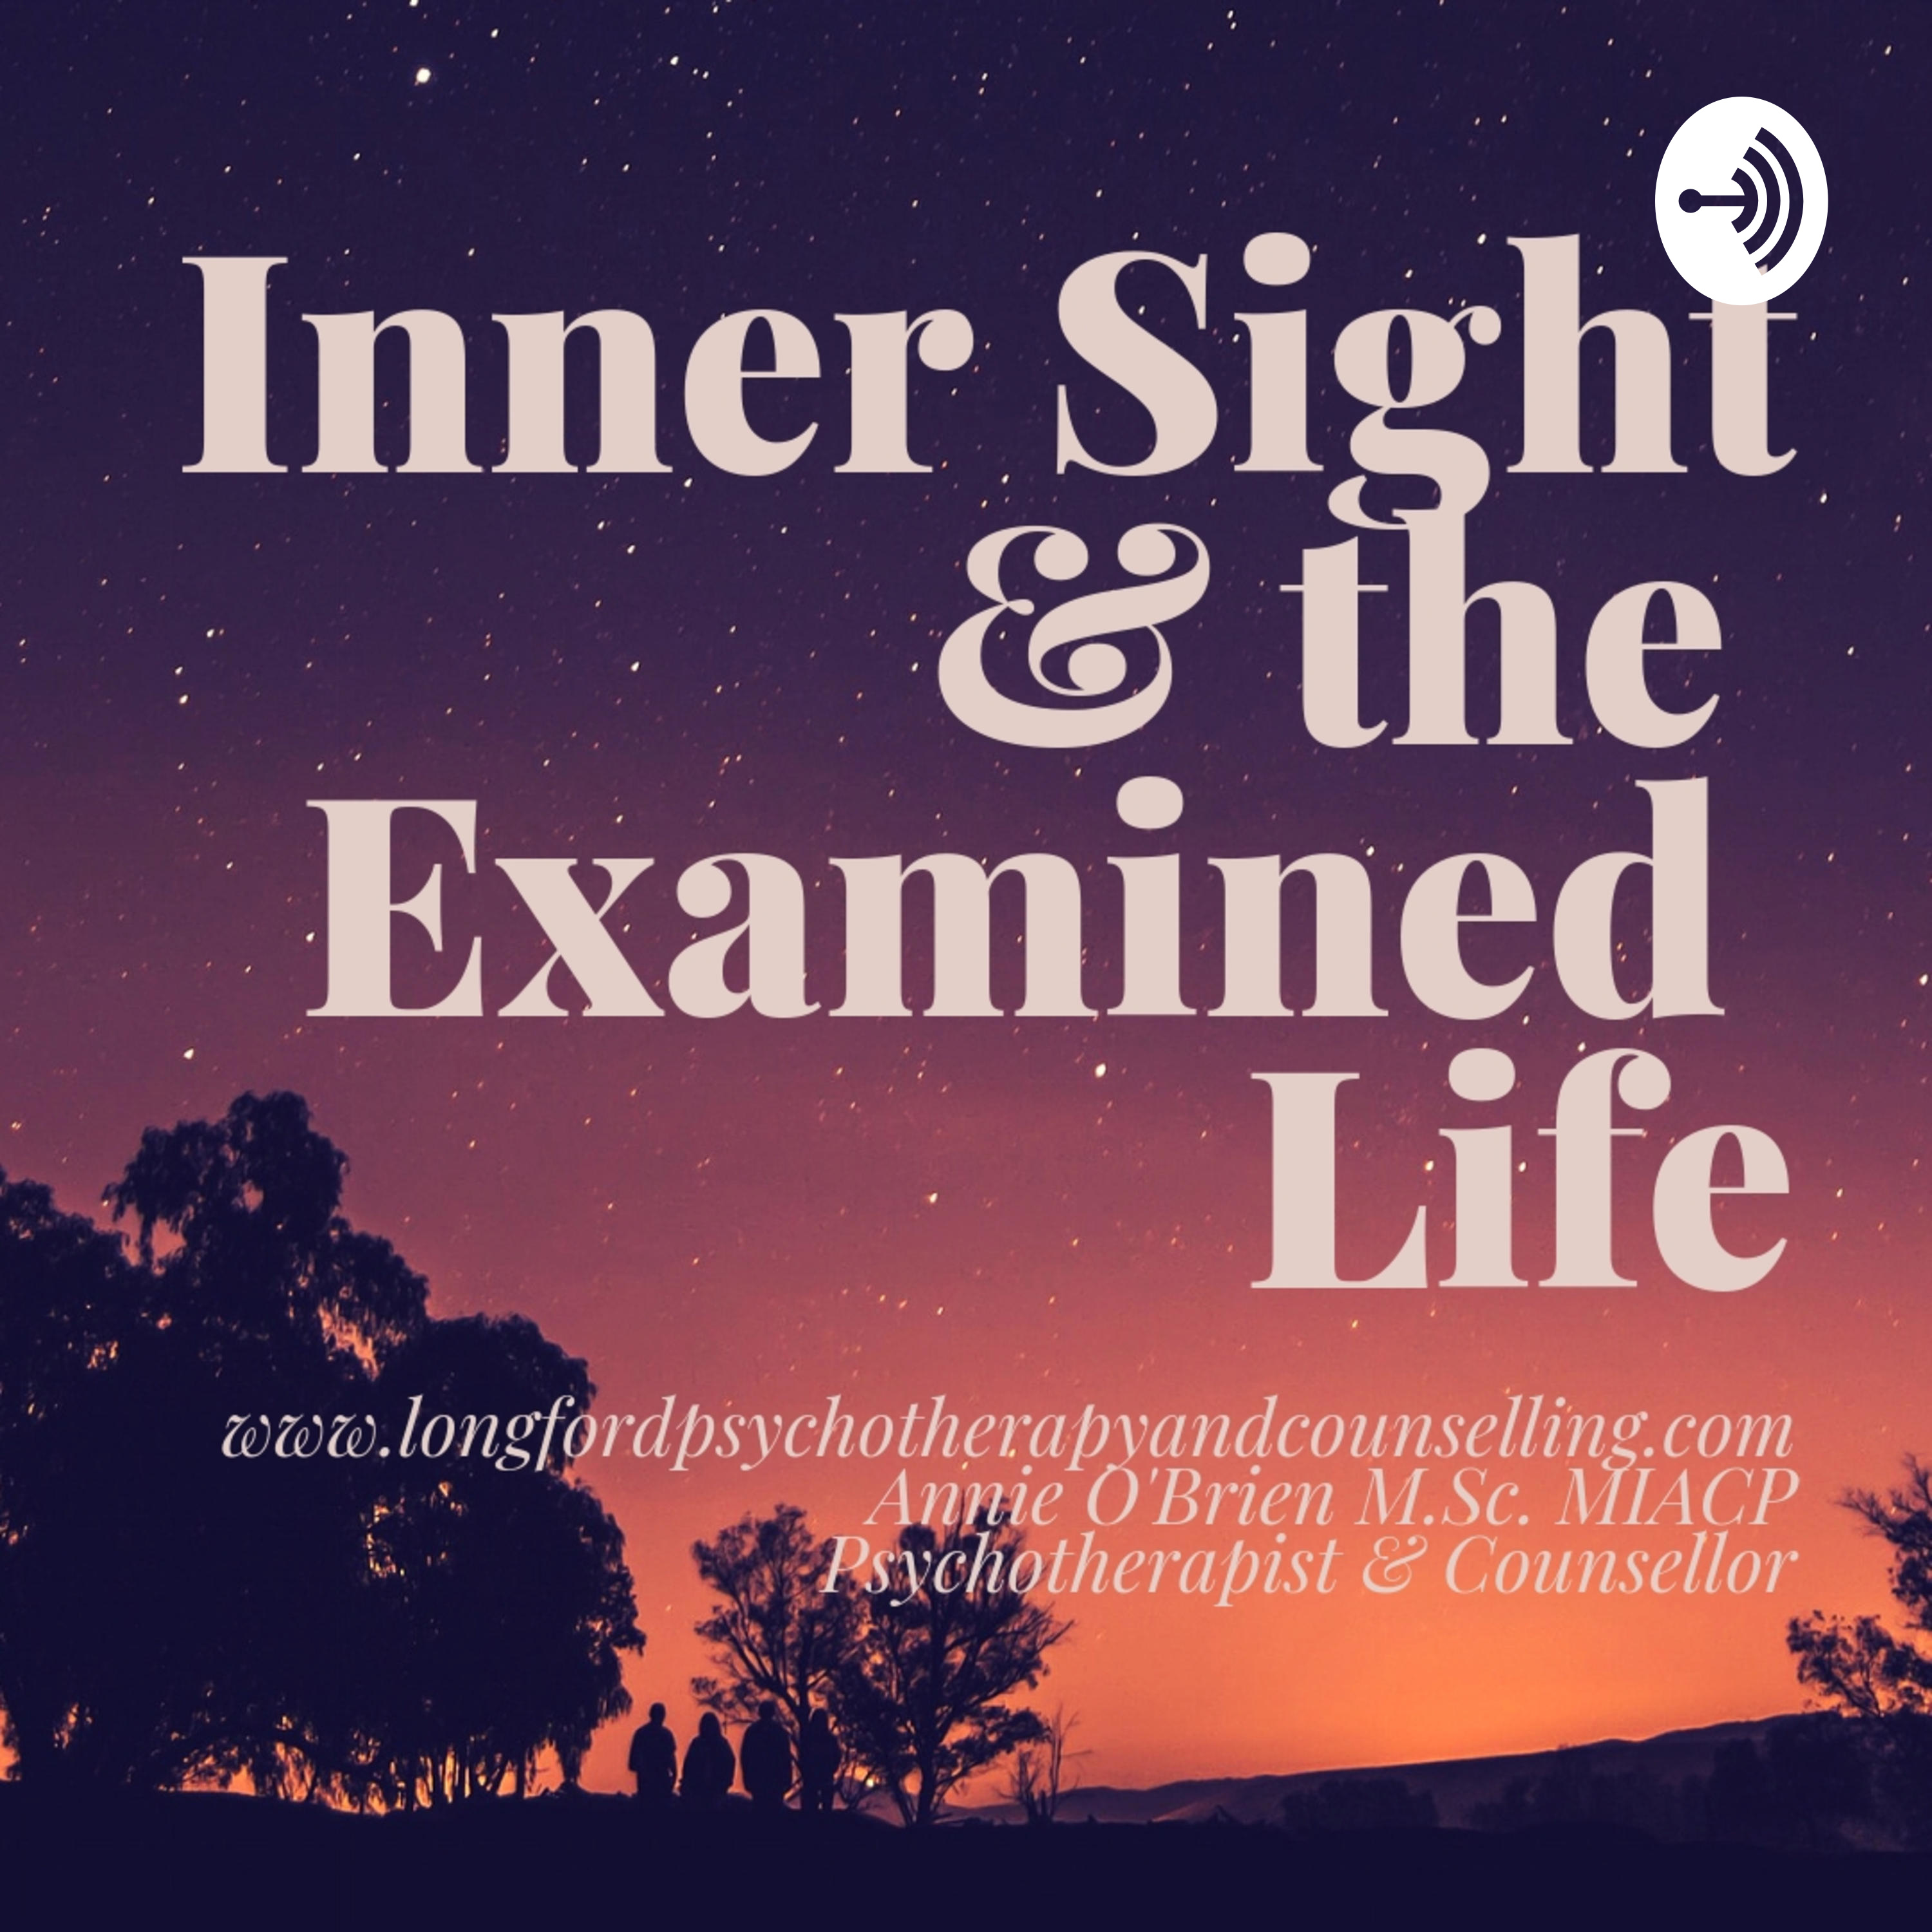 The Examined Life >> Inner Sight The Examined Life Listen Via Stitcher For Podcasts